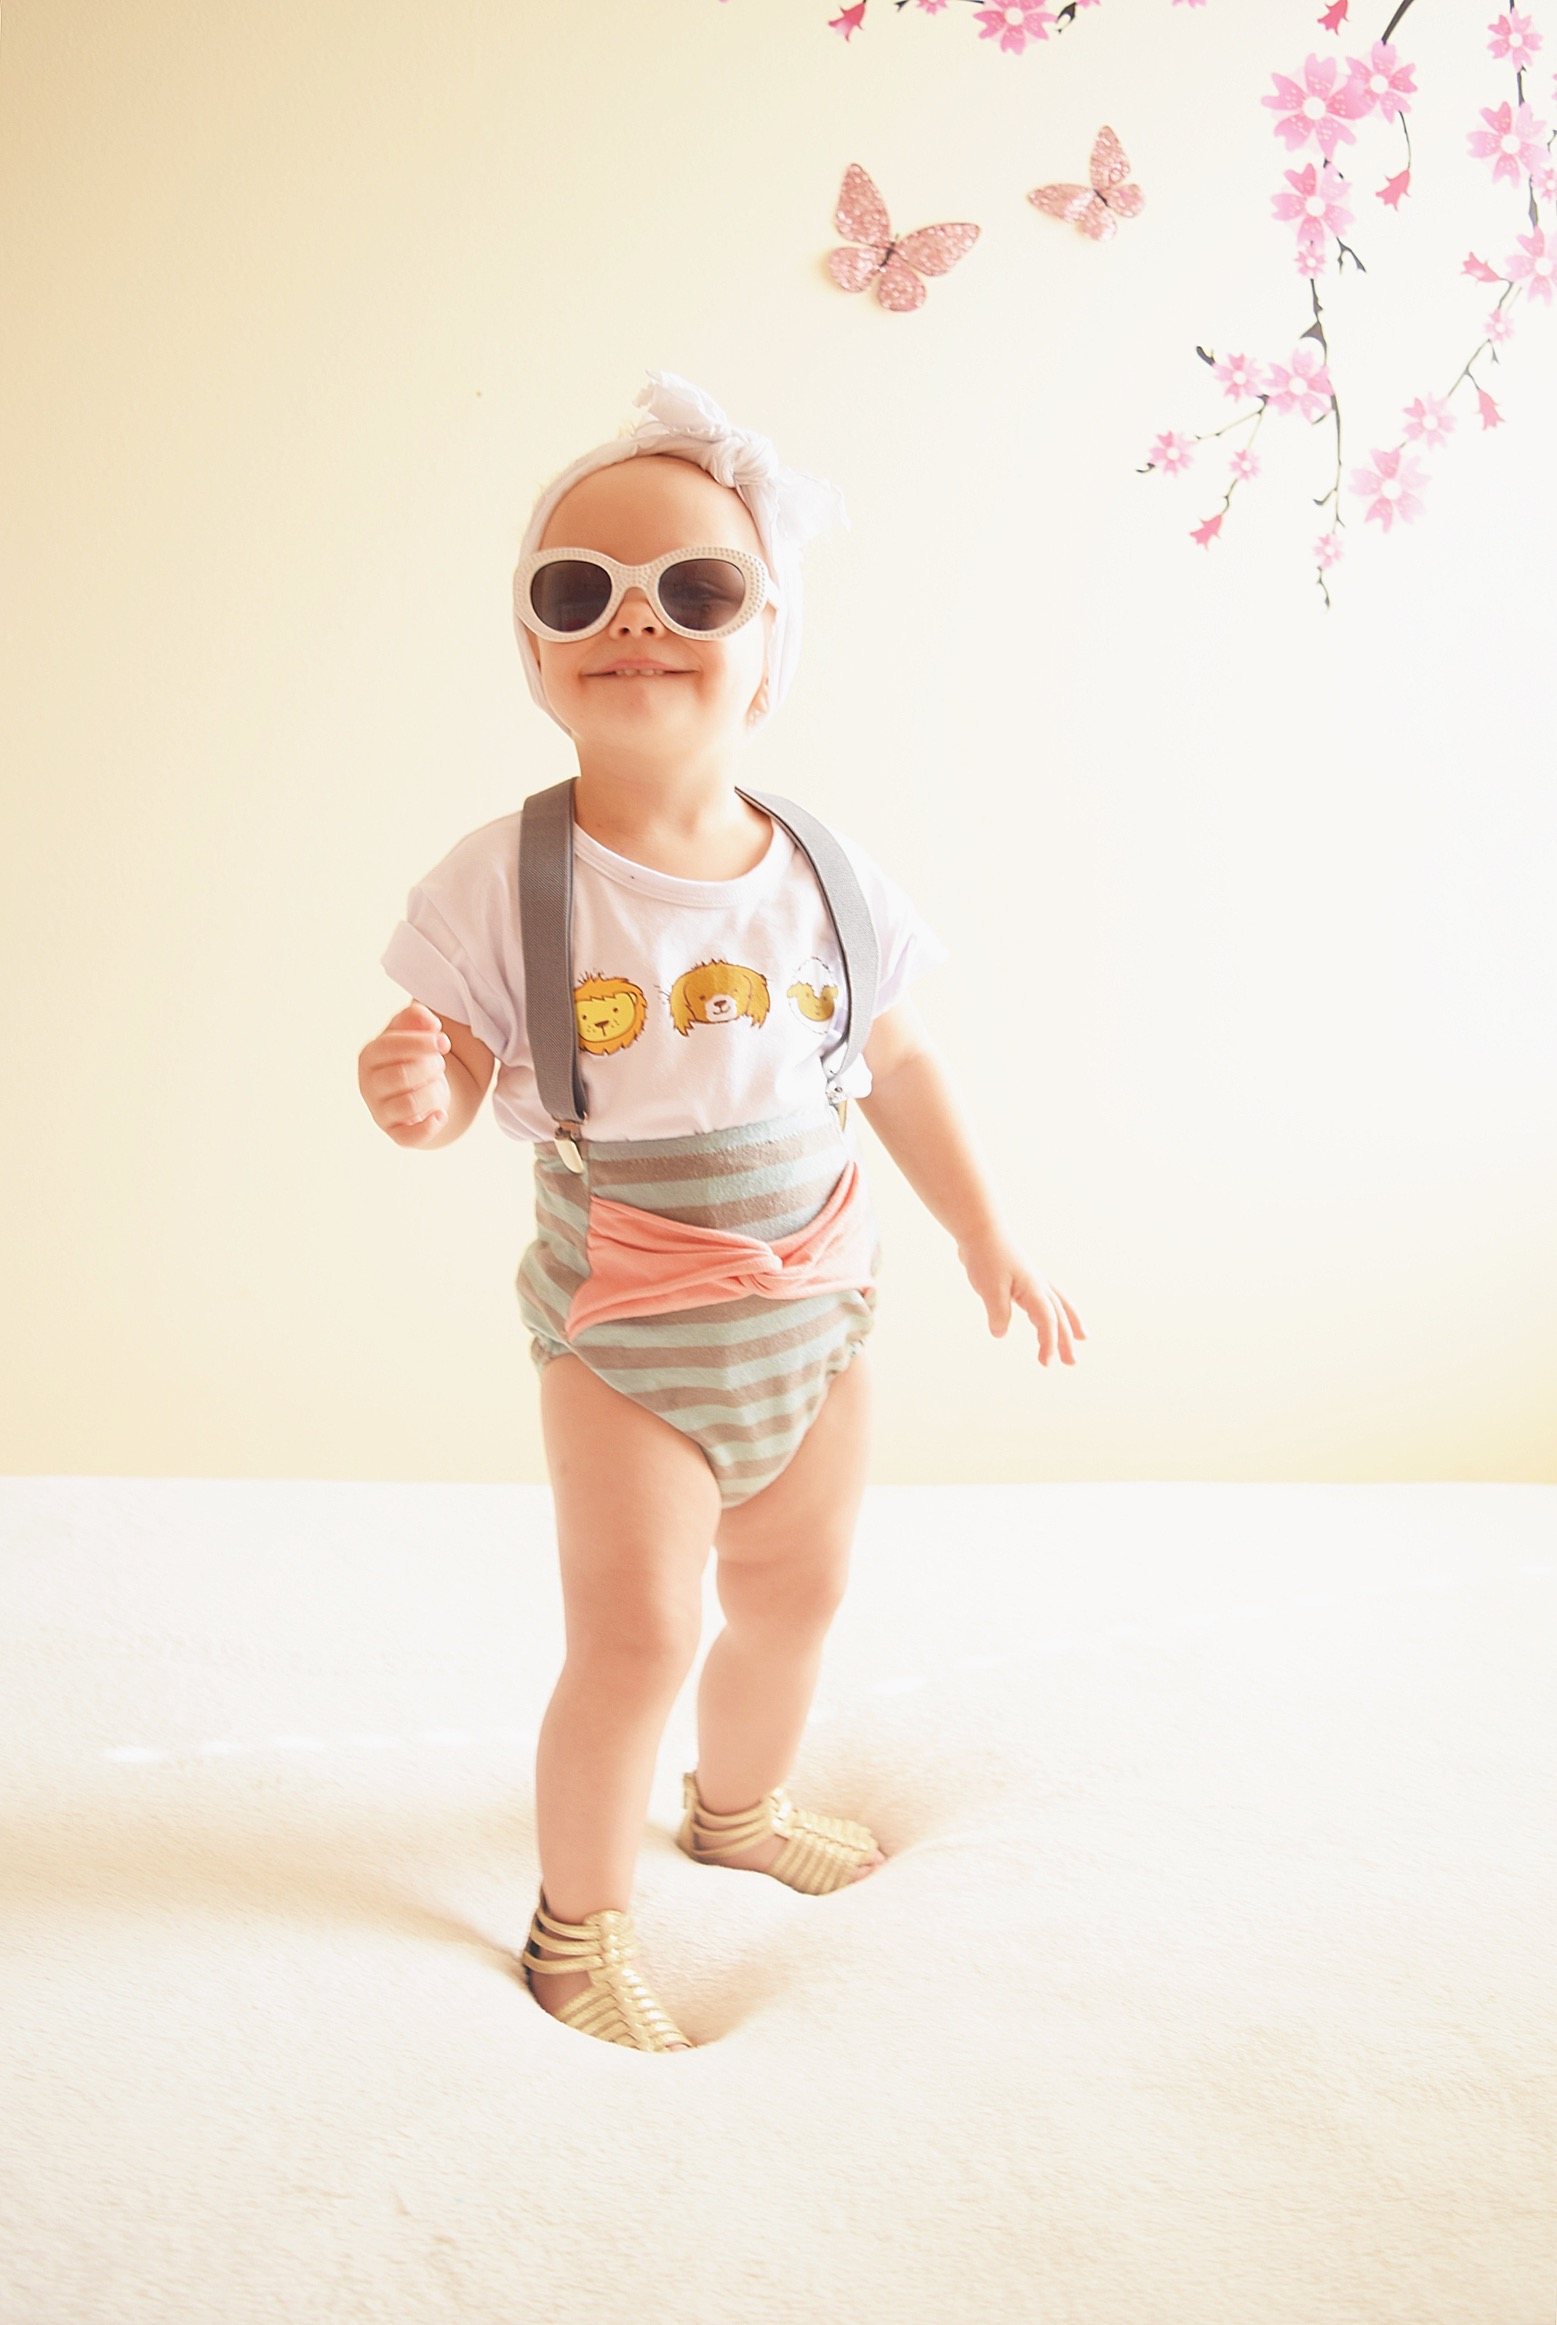 cute kids outfit ideas from handmade brands